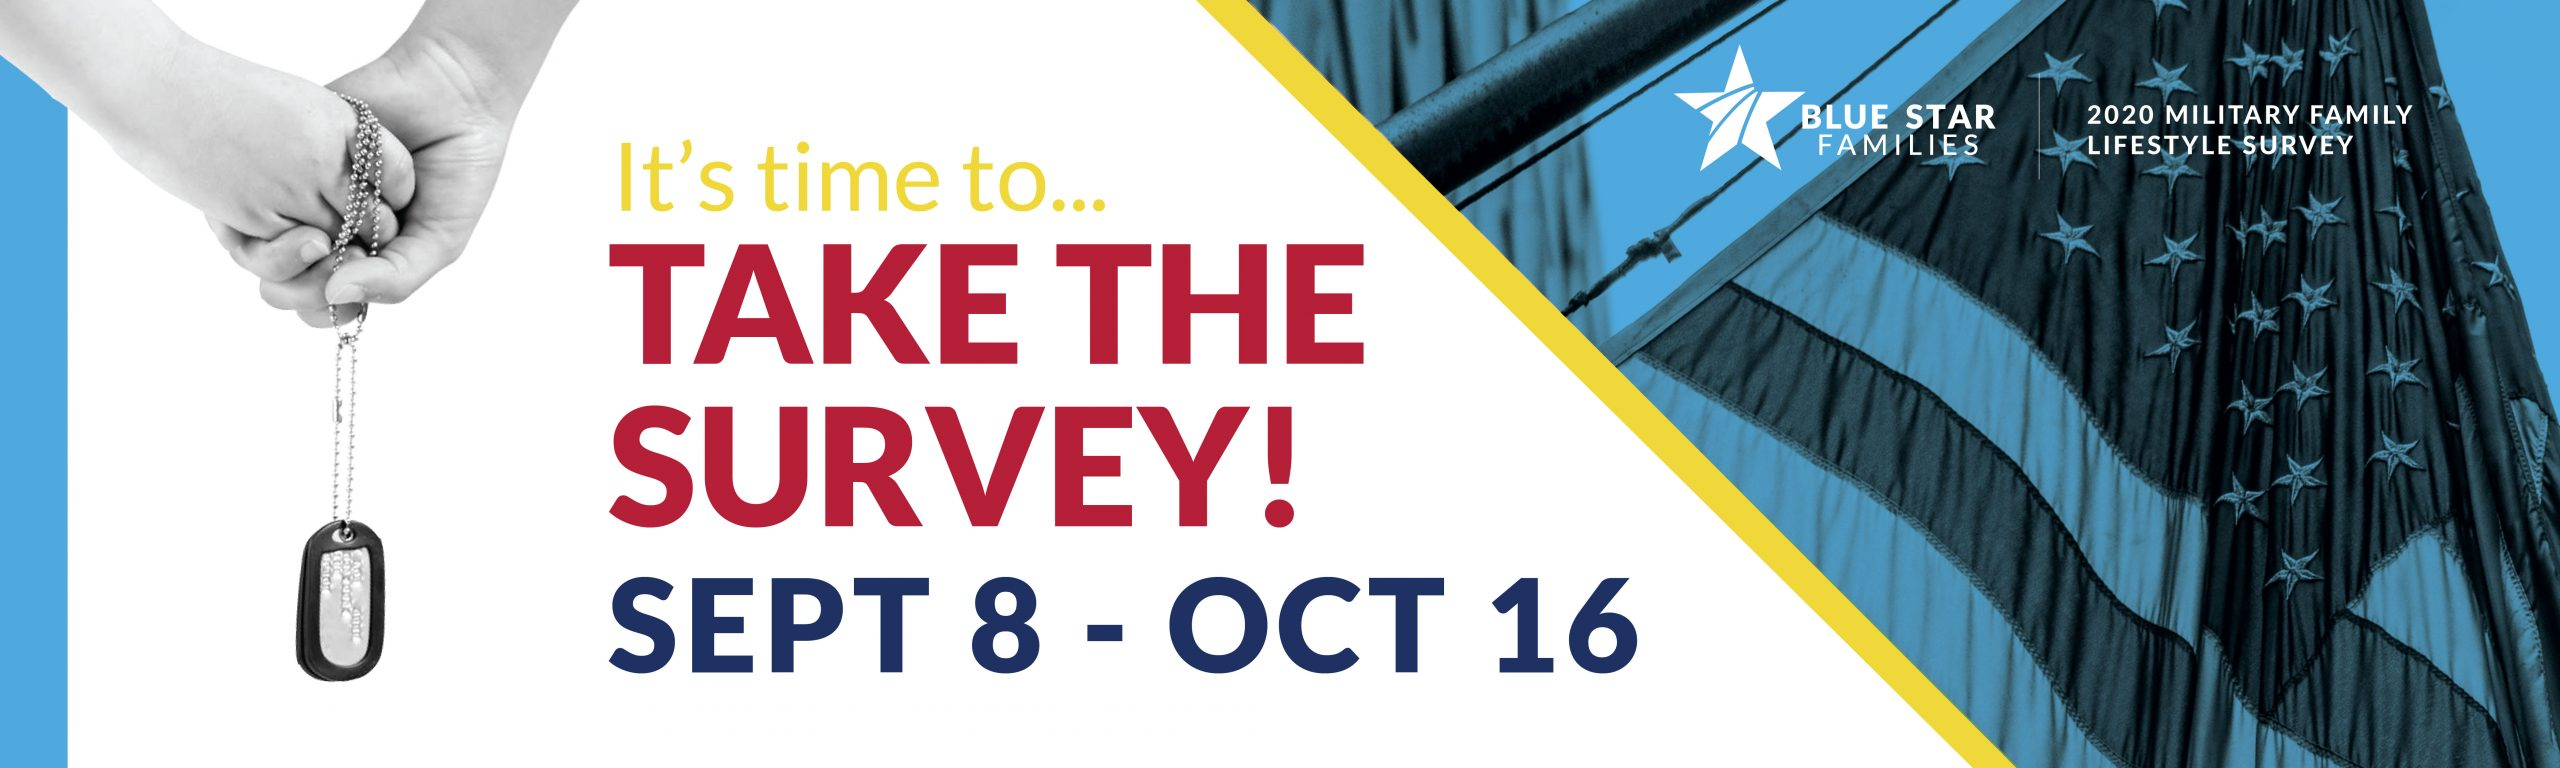 It's time to Take the Survey - Sept 8 - Oct 16 graphic header image